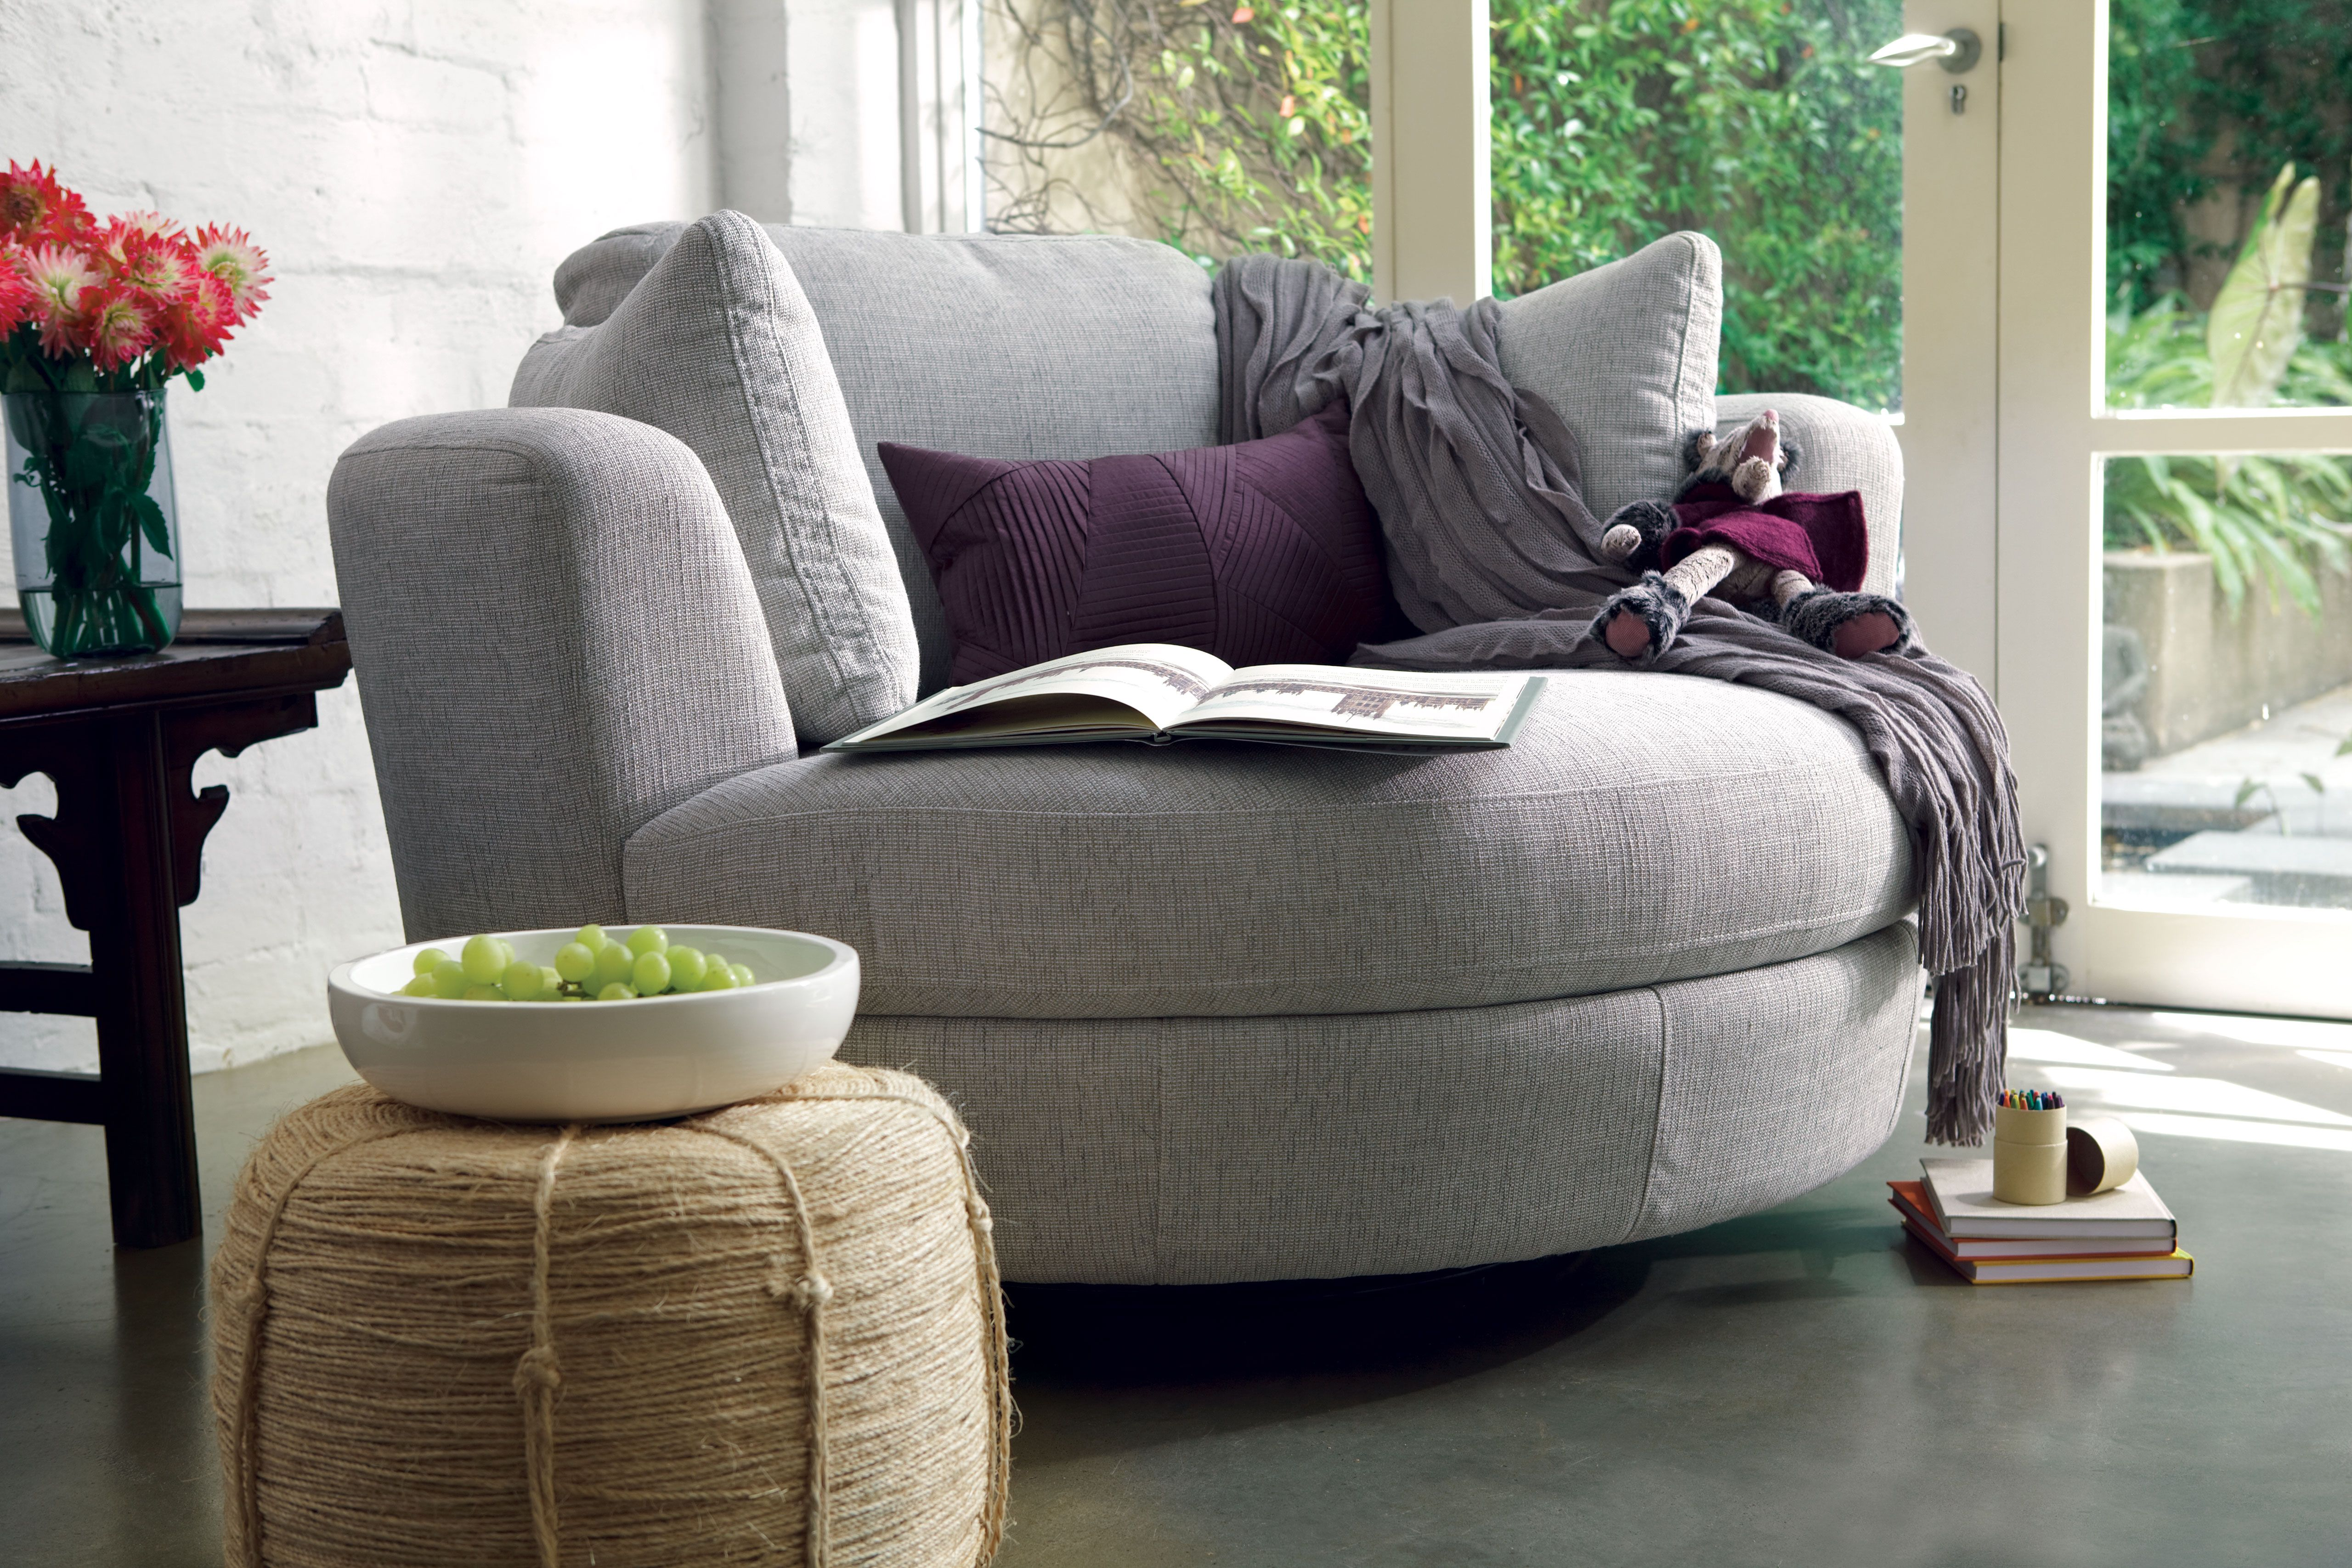 Beautiful Love This Couchy Chair, I Think It Swivels Too  Plush_Snuggle Chair_in U0027Astral